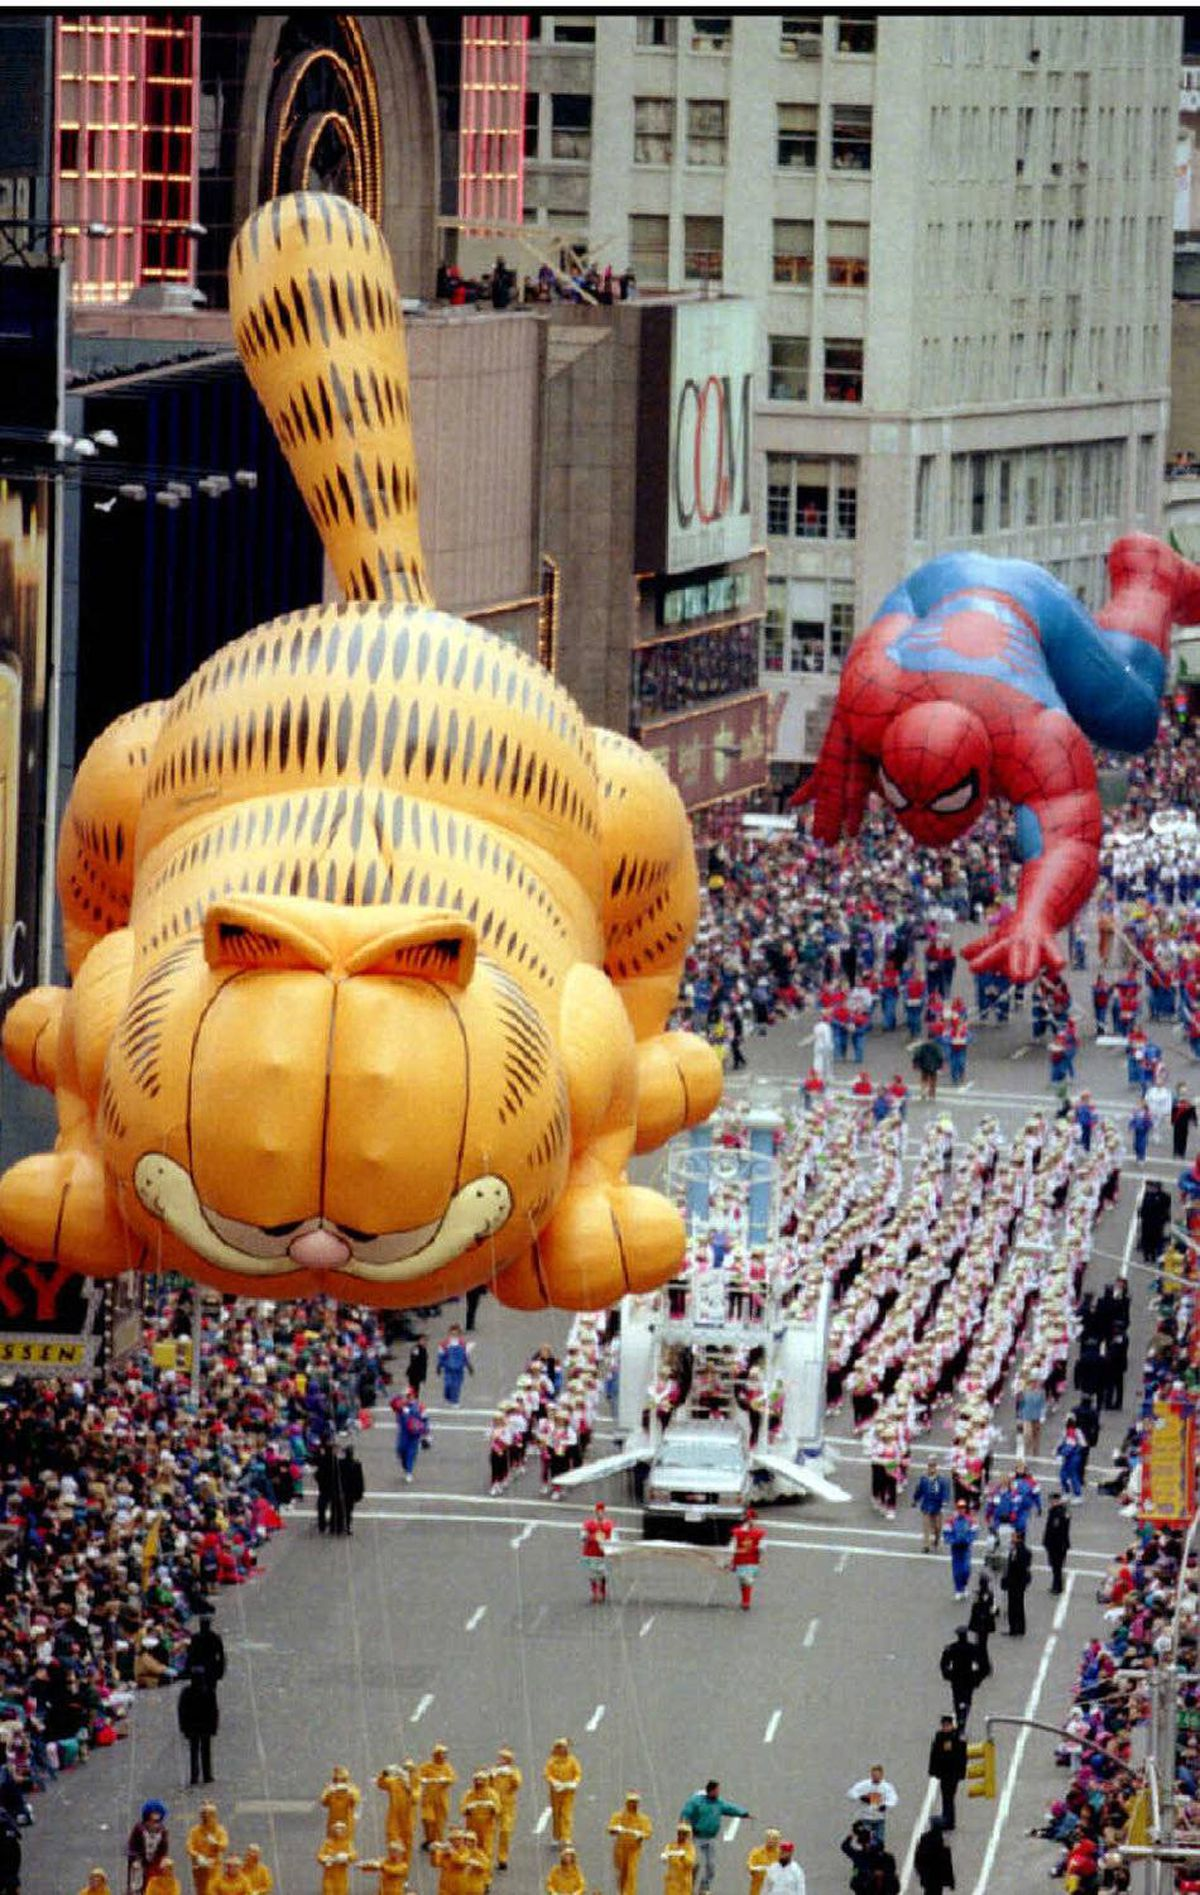 Here's a movie plot that's sure to be a hit: Garfield and Spider-Man team up to fight crimes against lasagna. Year: 1995